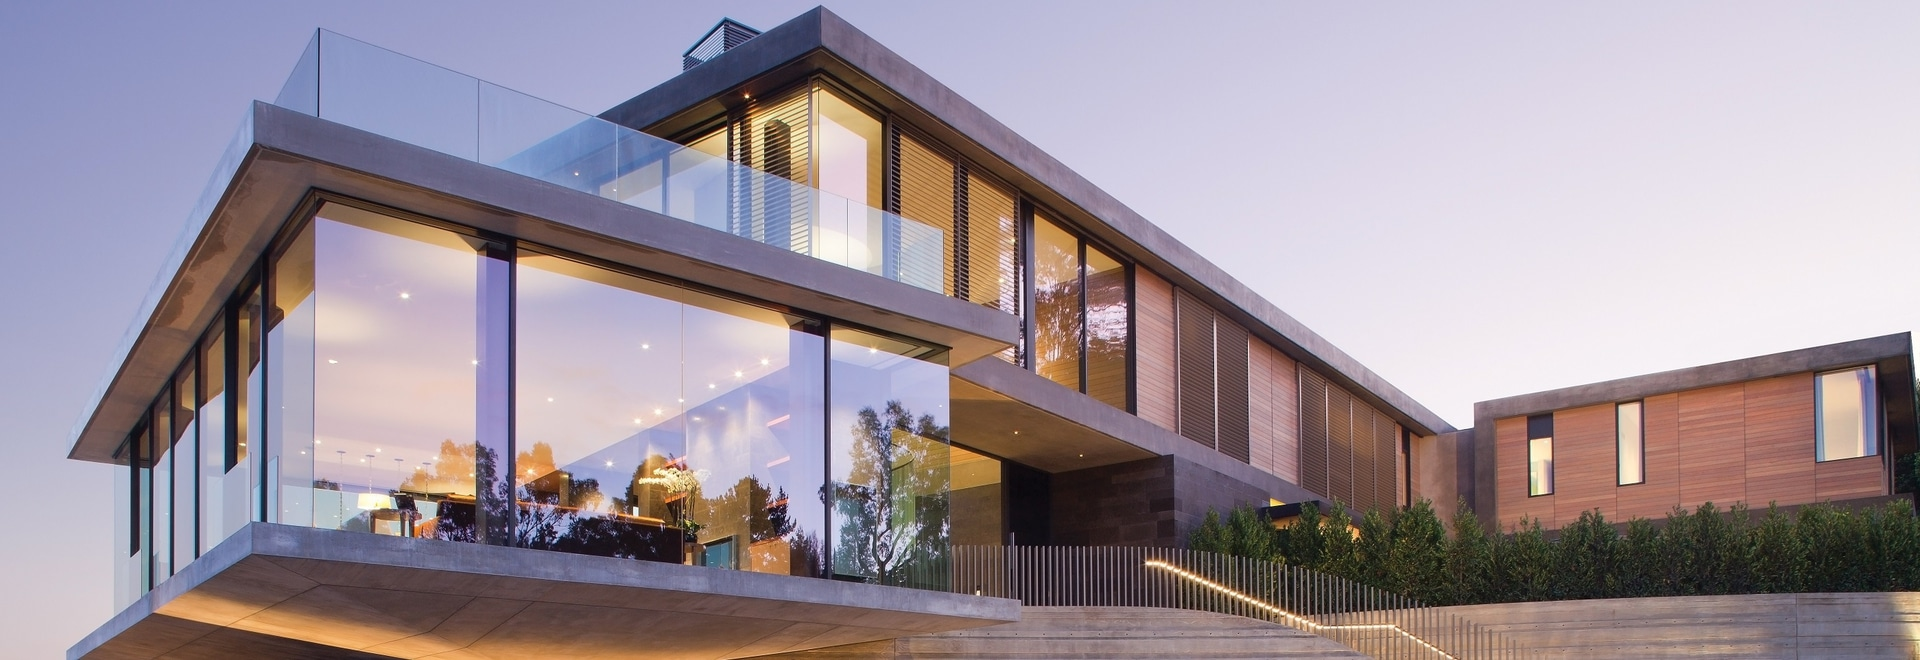 This House Has A Cantilevered Dining Room With Walls Of Glass